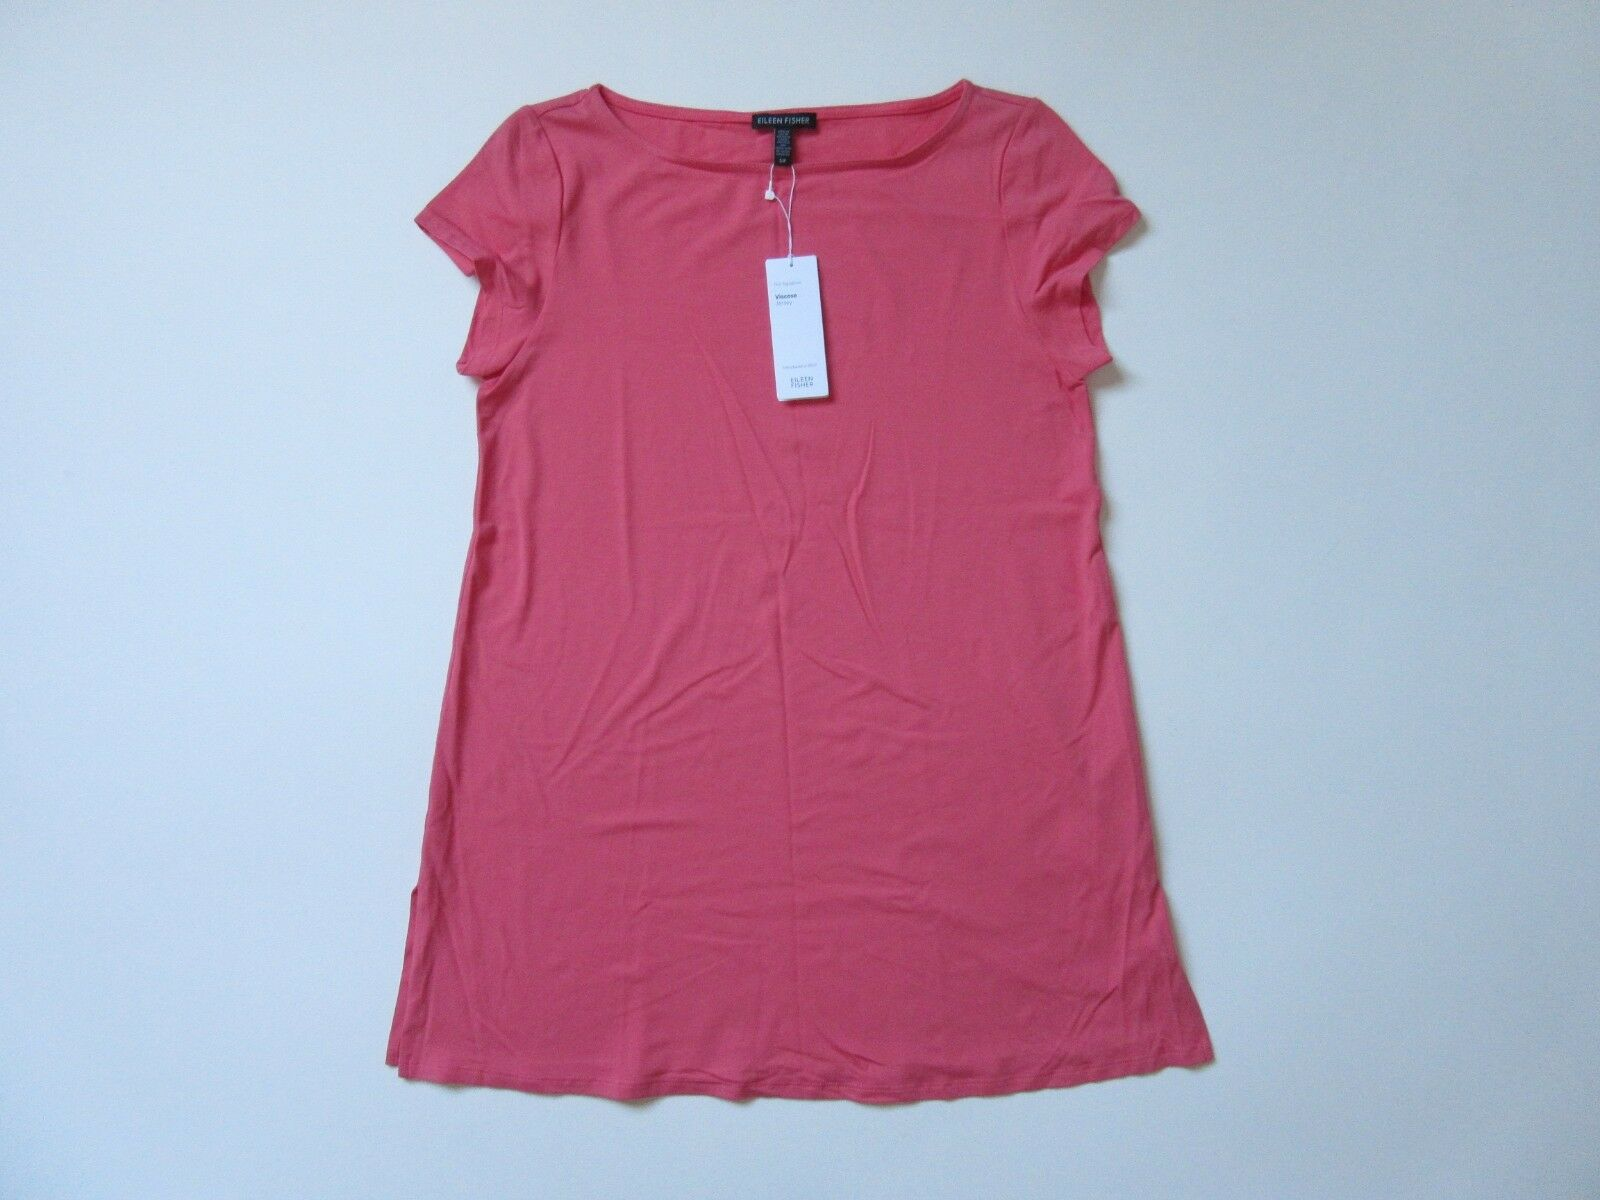 NWT Eileen Fisher Bateau Neck Tunic in Rosa Grapefruit Viscose Jersey Top S